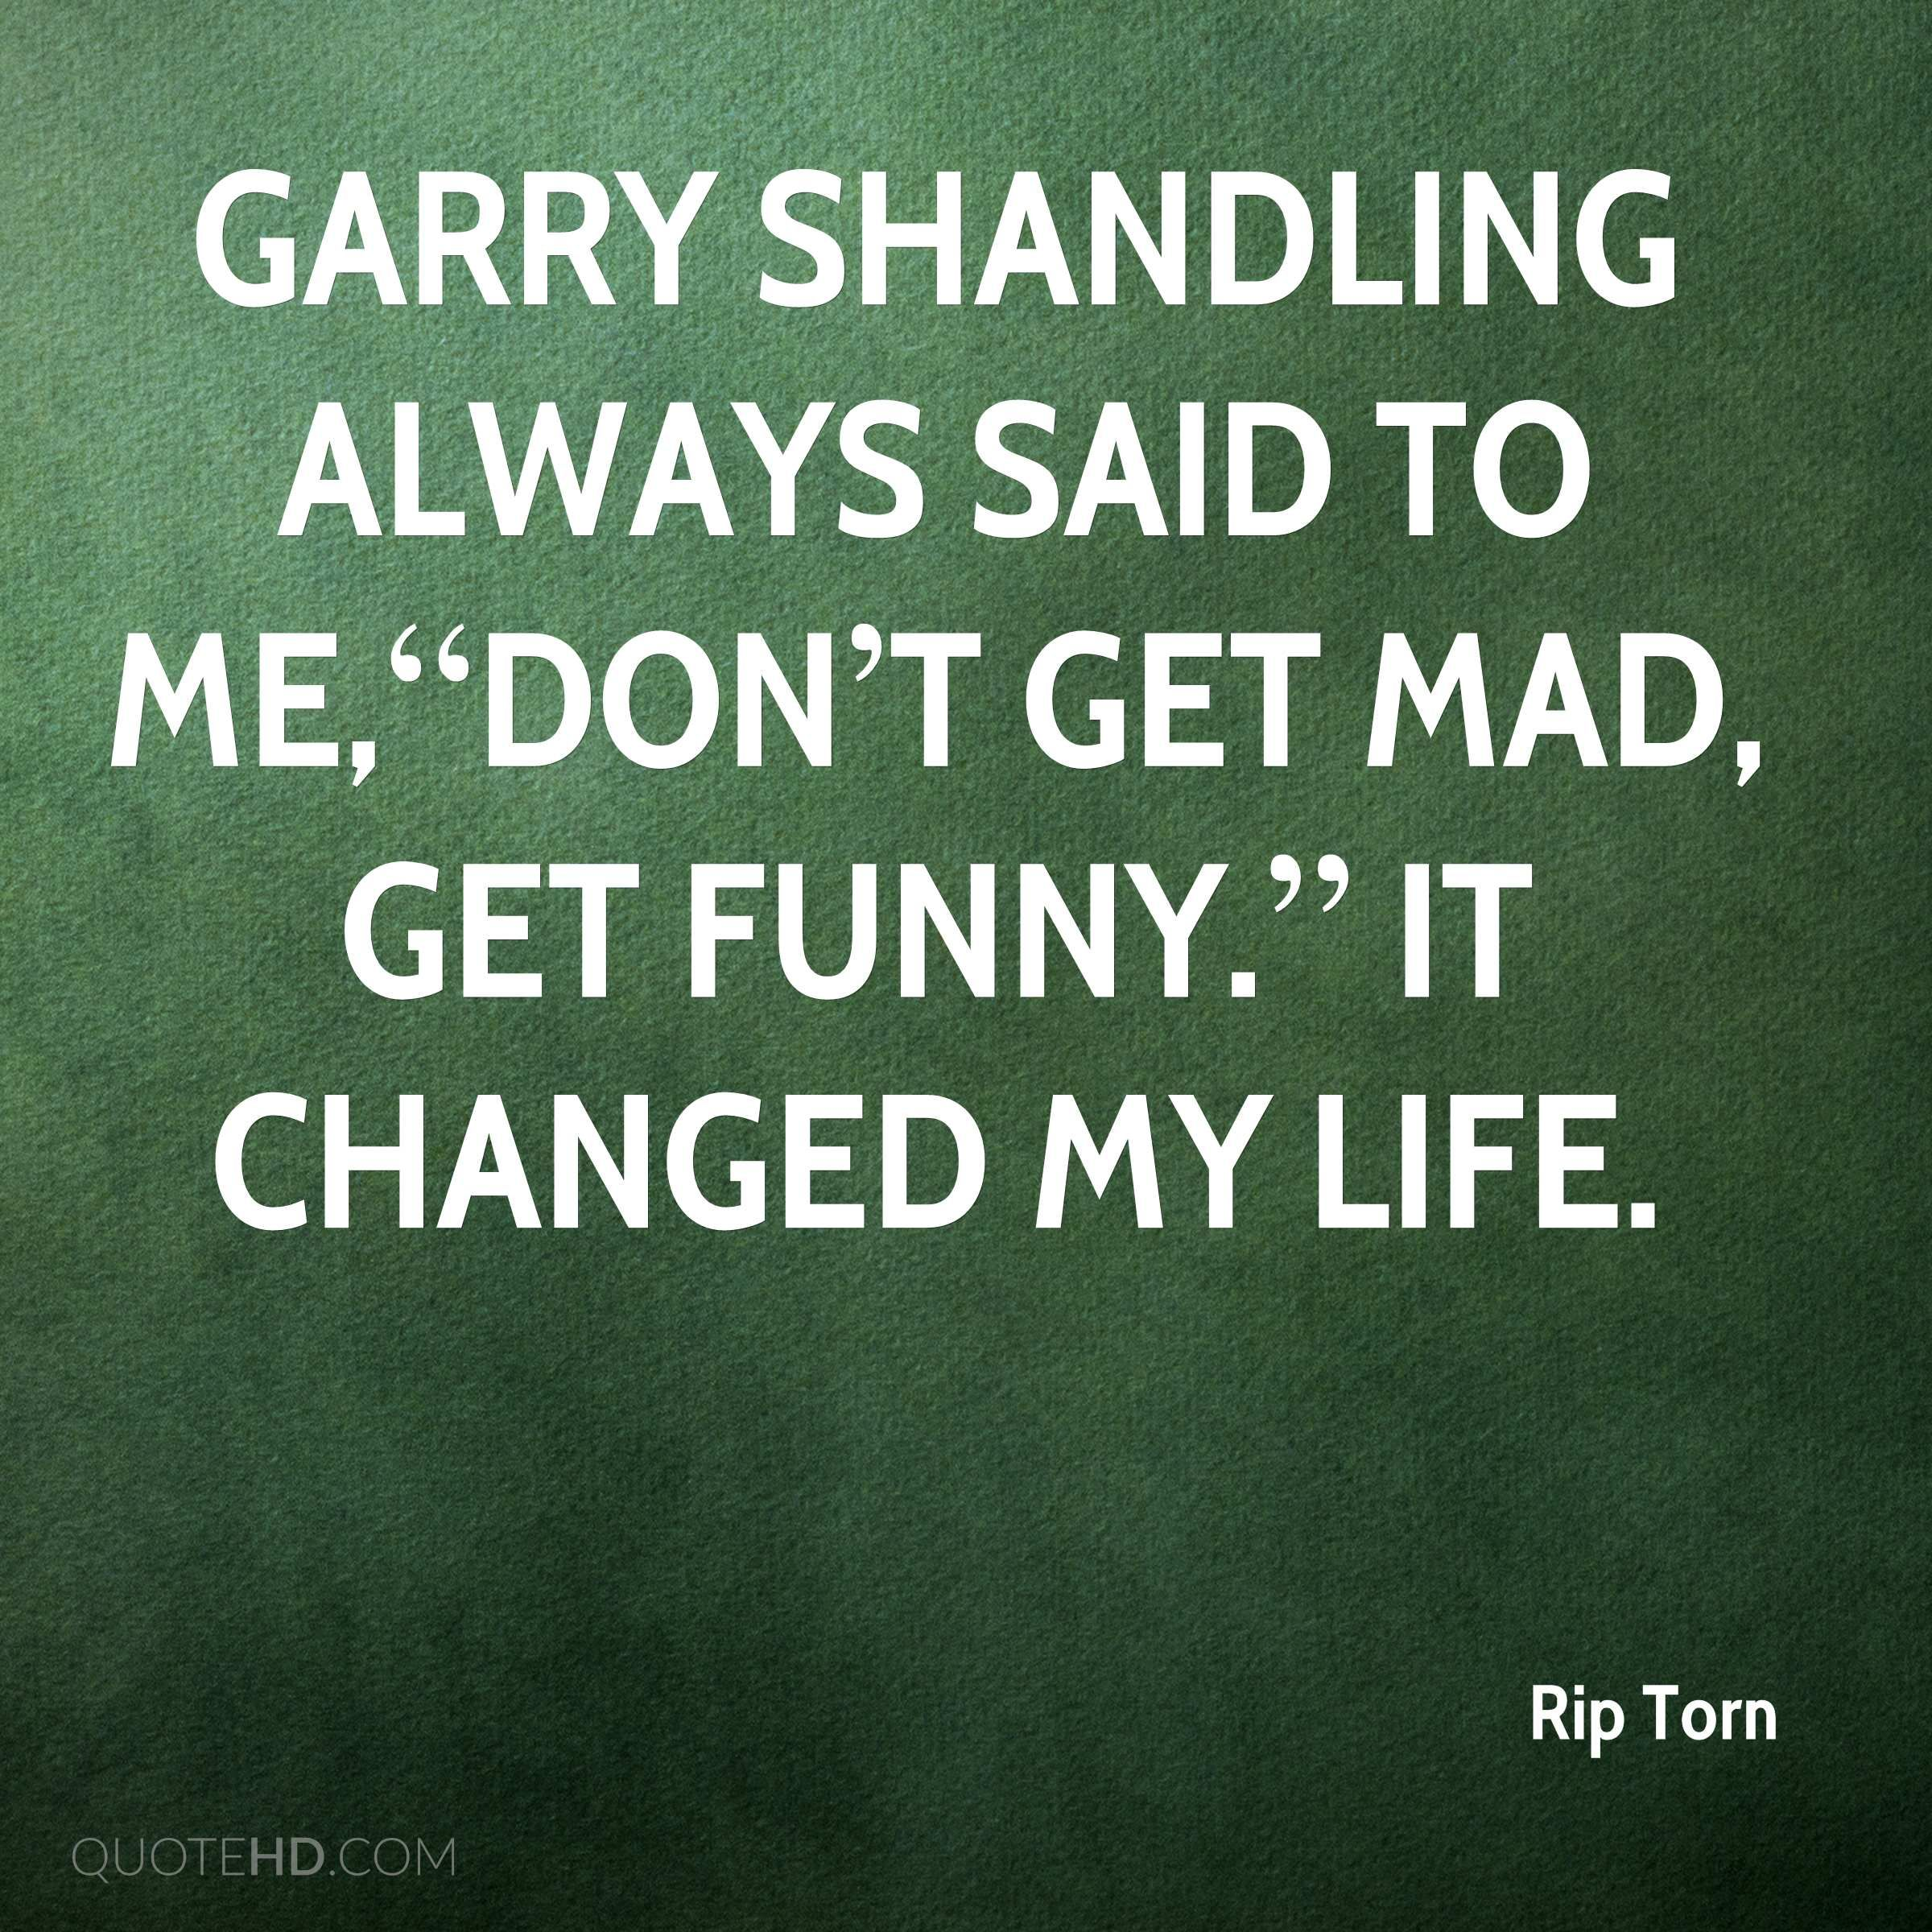 Rip Torn Quote On Garry Shandling Tears Quotes Garry Shandling Quotes